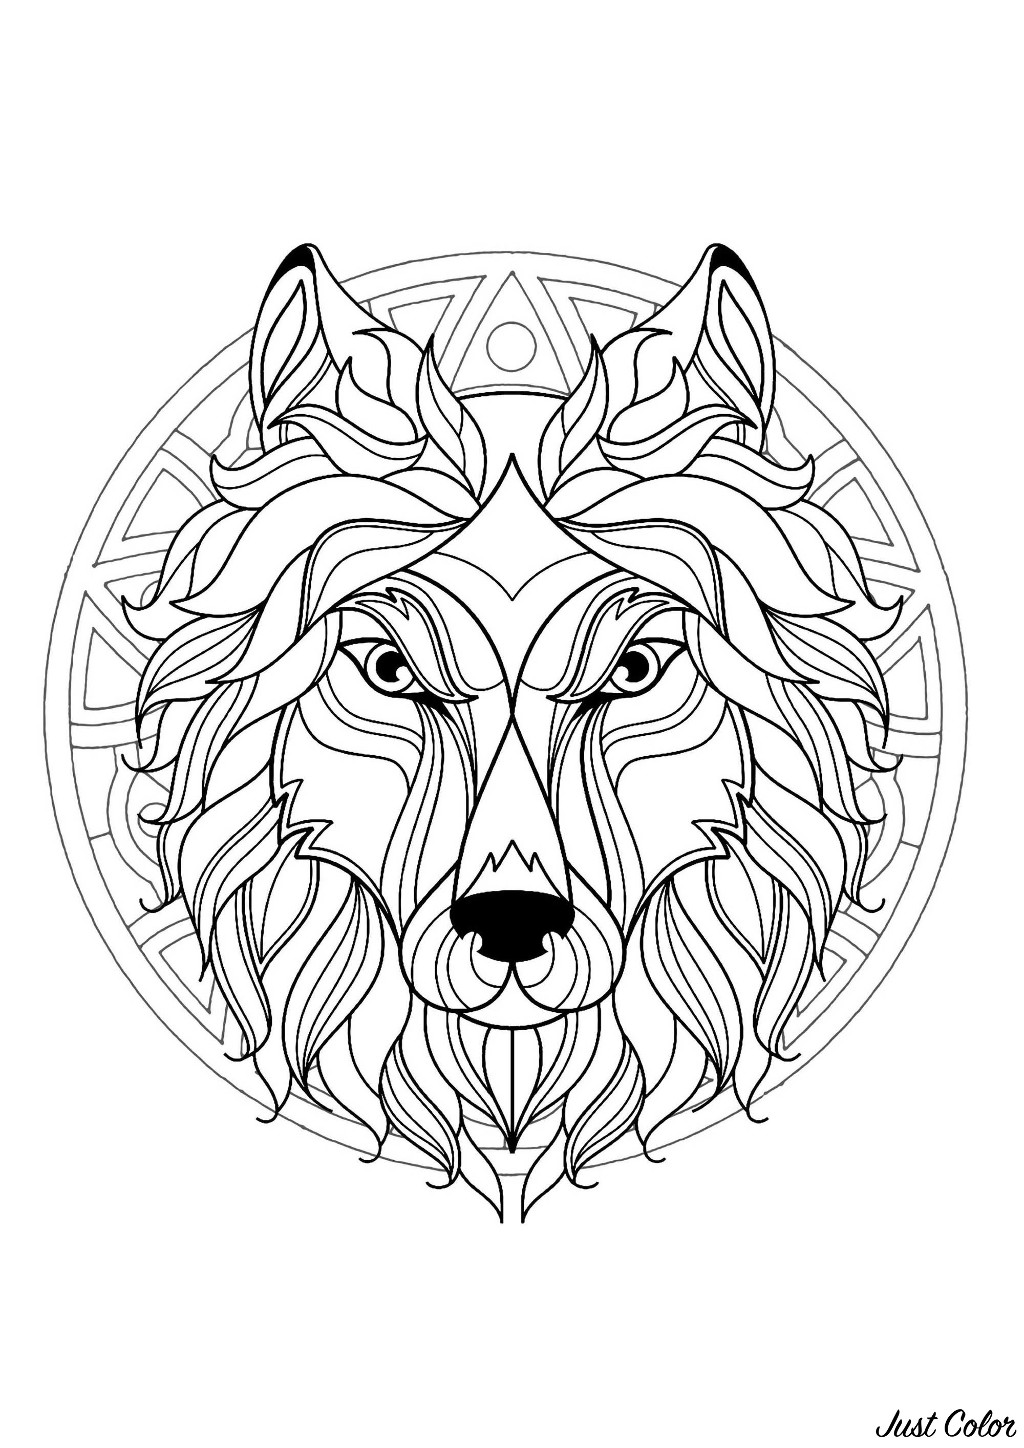 Mandala to color with beautiful Wolf head and geometric patterns in background